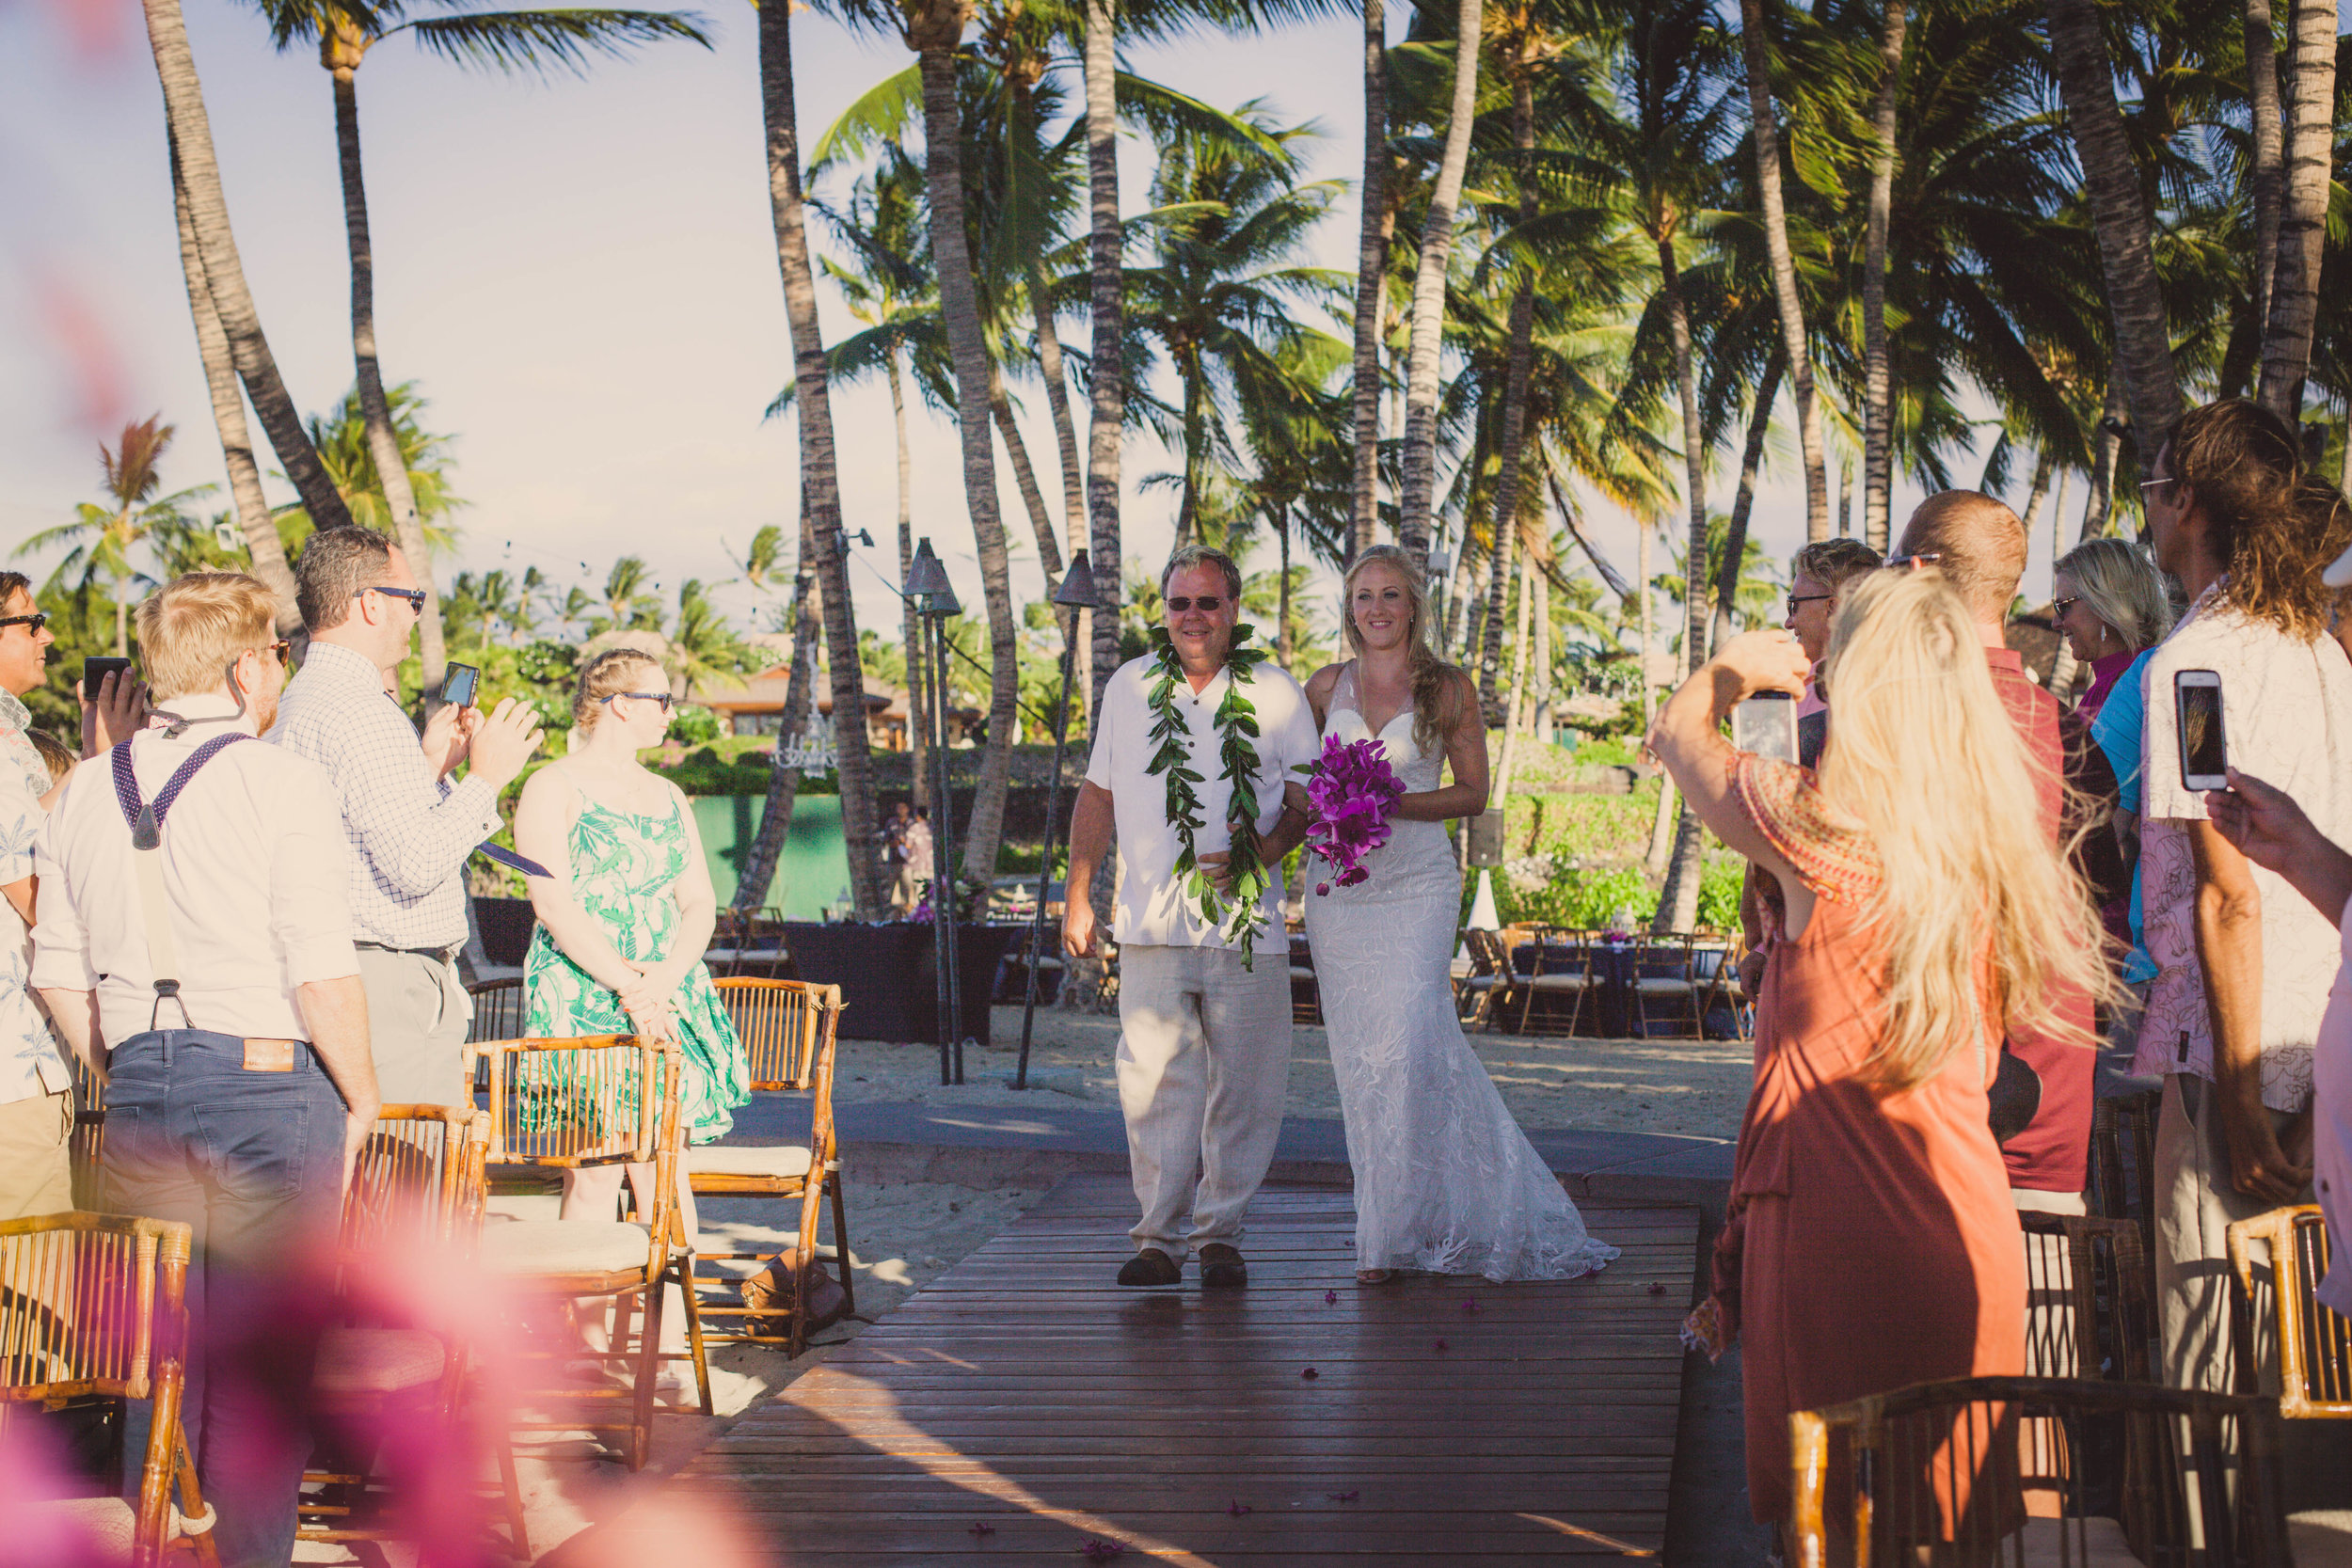 big island hawaii fairmont orchid beach wedding © kelilina photography 20170812173530-1.jpg